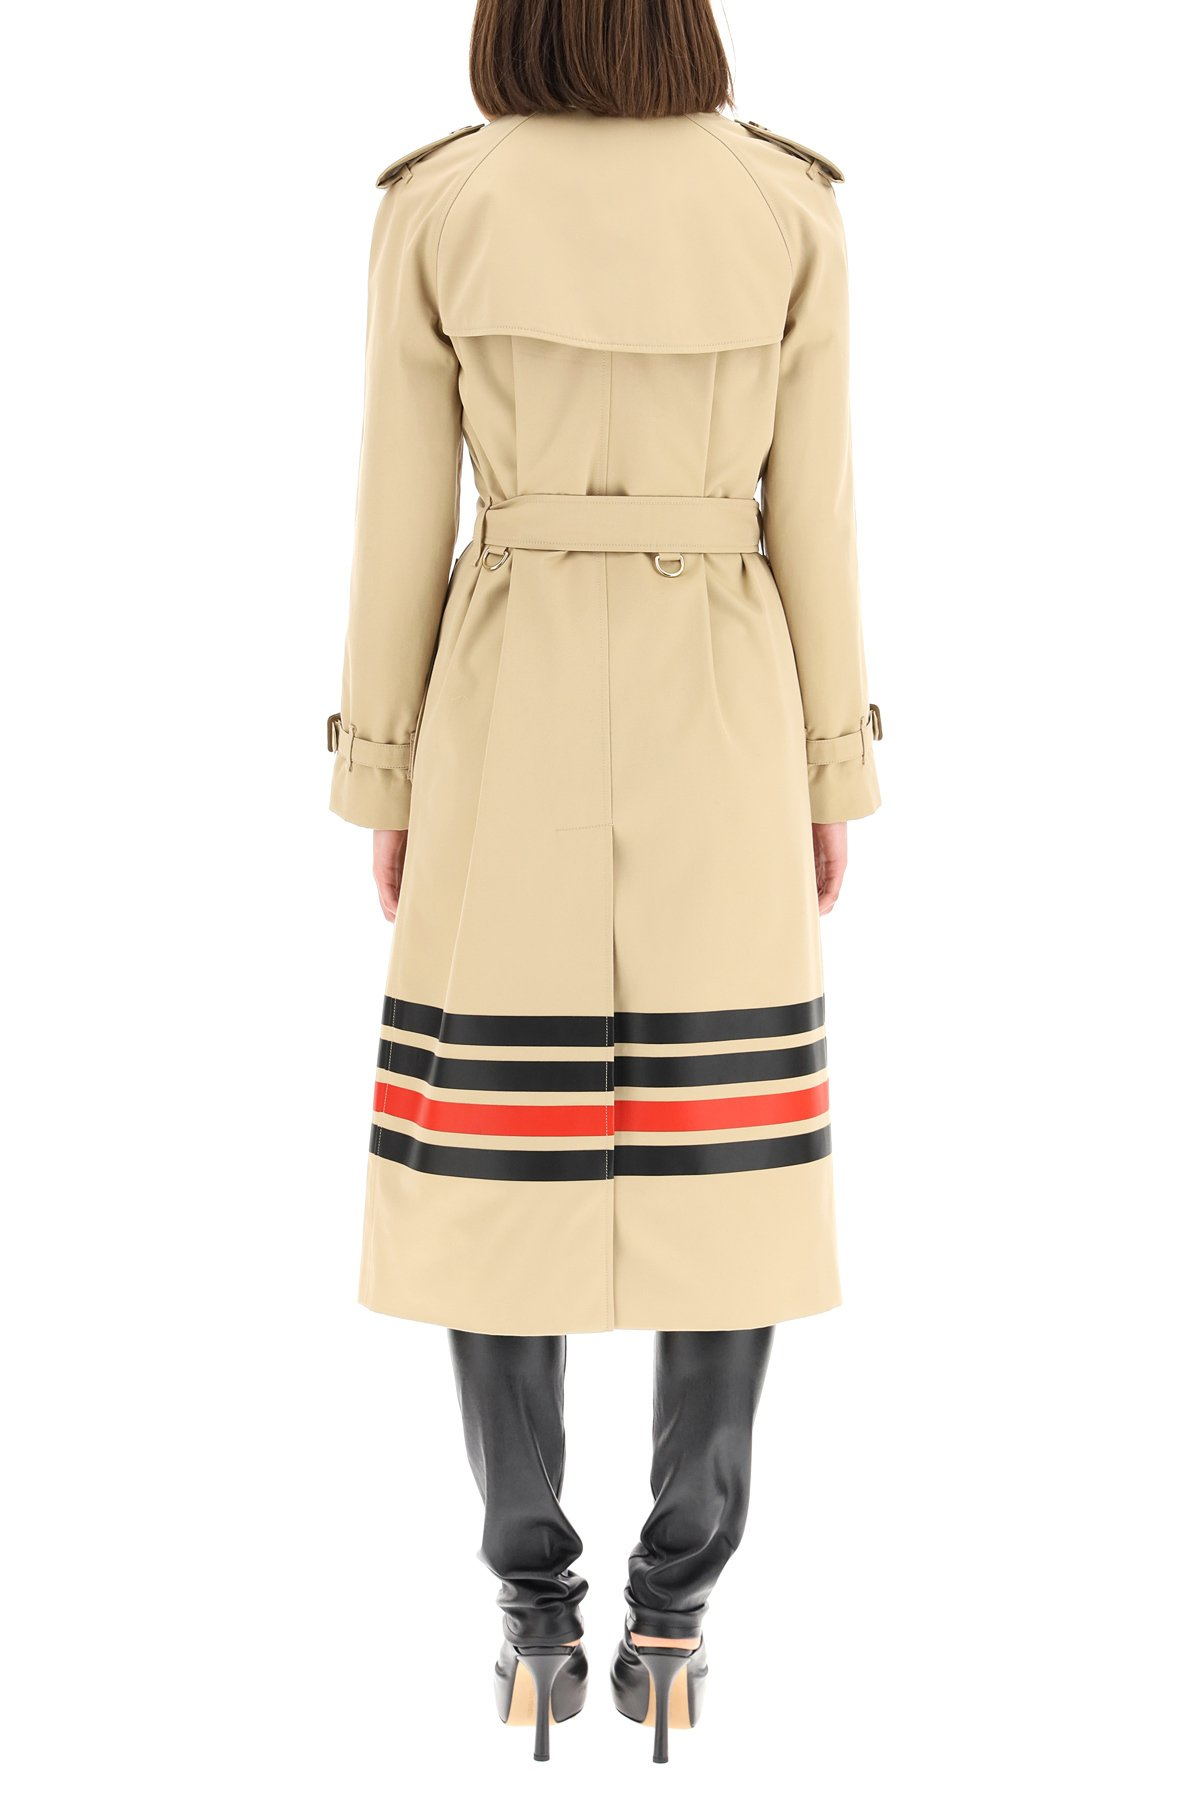 Burberry trench coat waterloo con motivo a righe